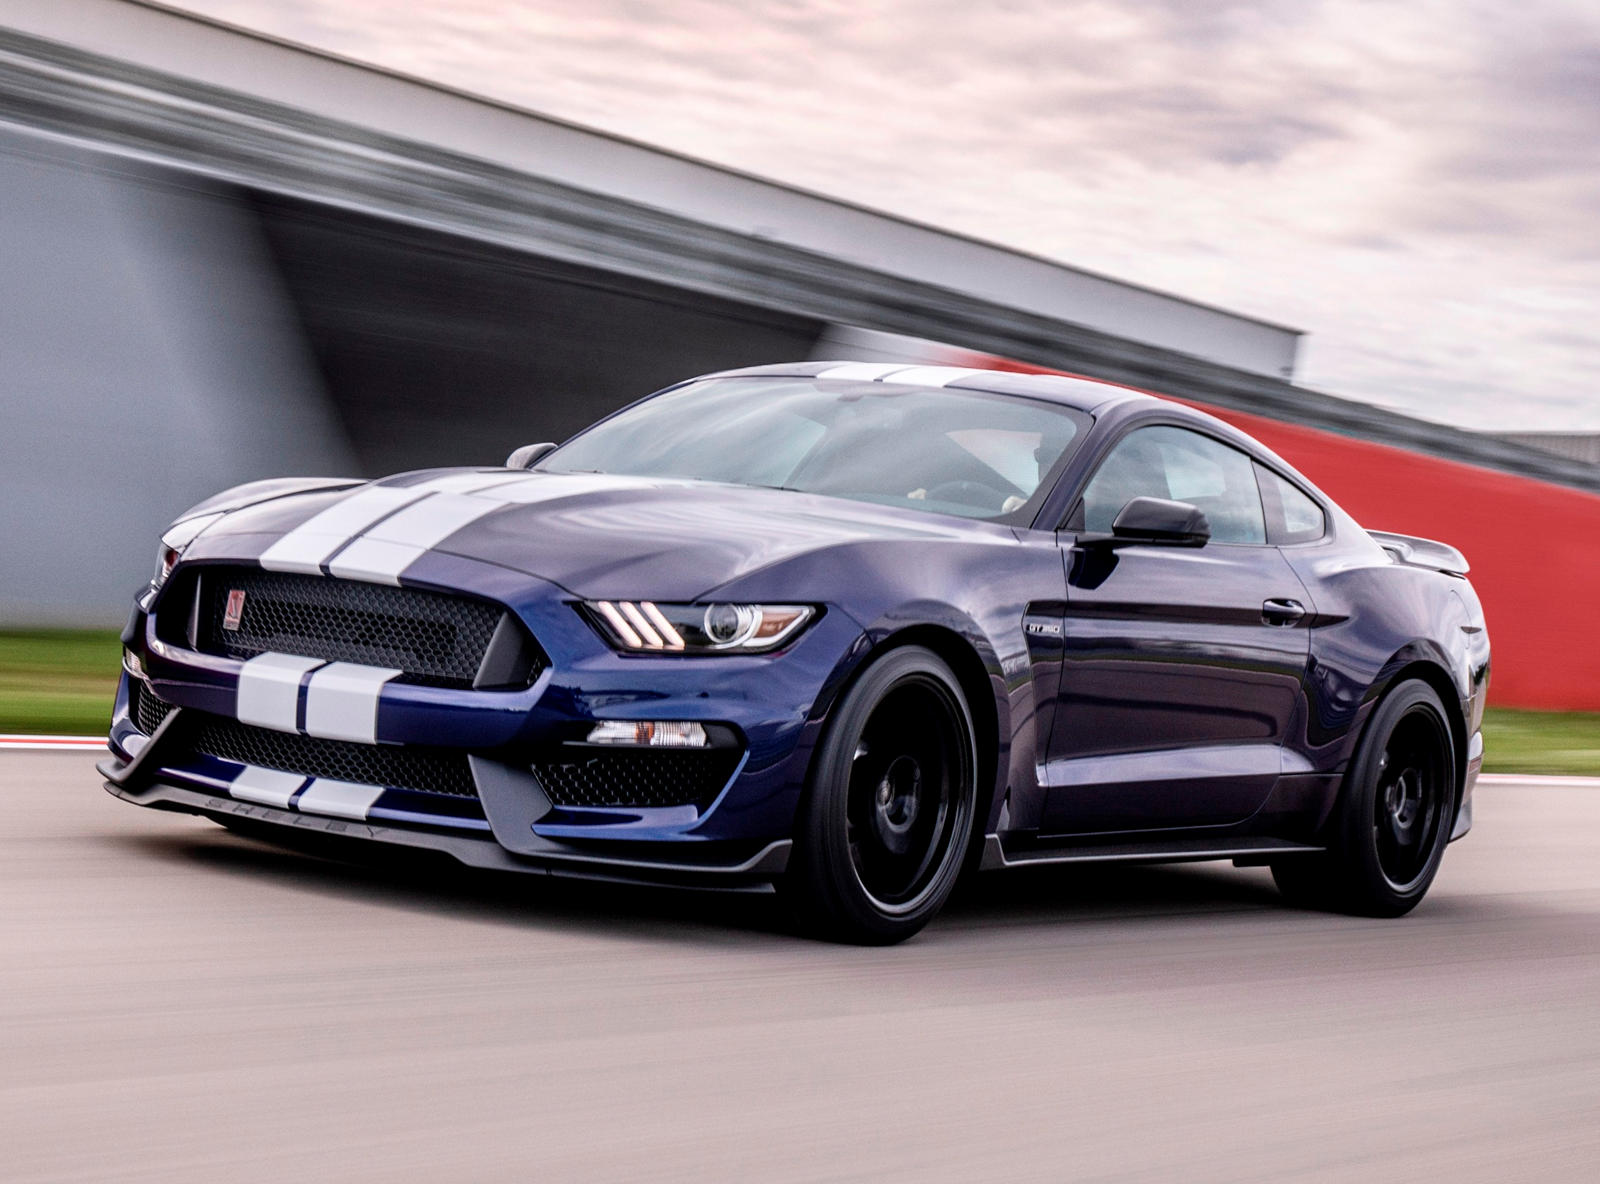 2021 Ford Mustang Redesign, Engine & Drivertrain >> Next Generation Ford Mustang Will Be Dodge Challenger Big